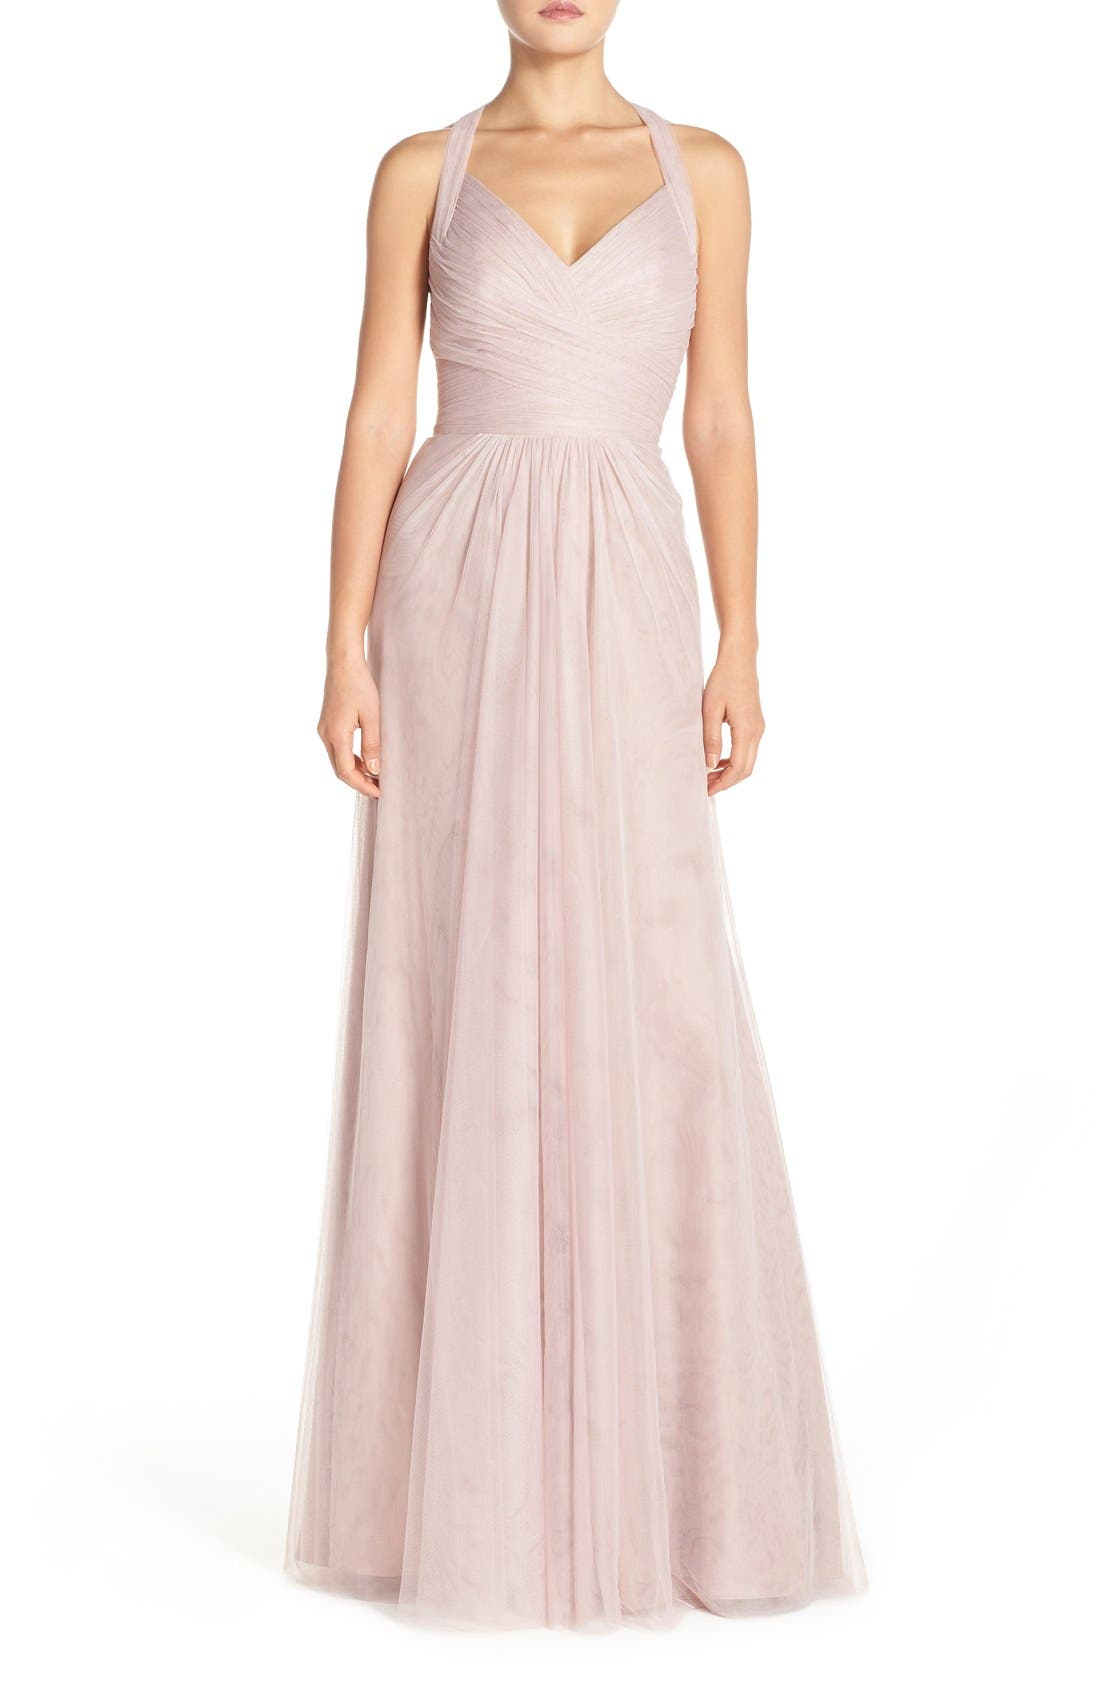 Monique Lhuillier Bridesmaids Sleeveless V-Neck Tulle Gown